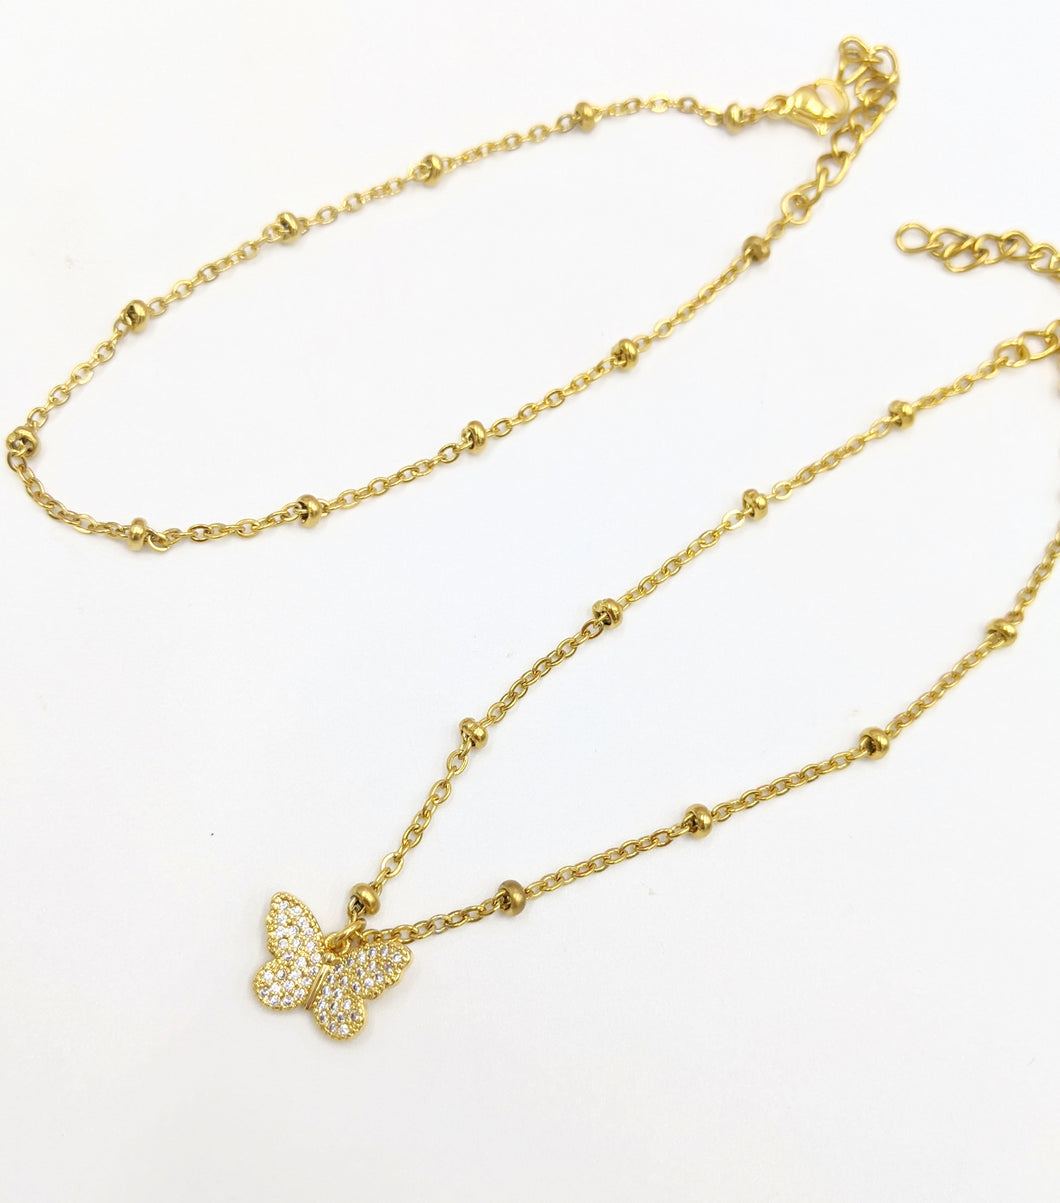 Gold Stainless Steel Anklet